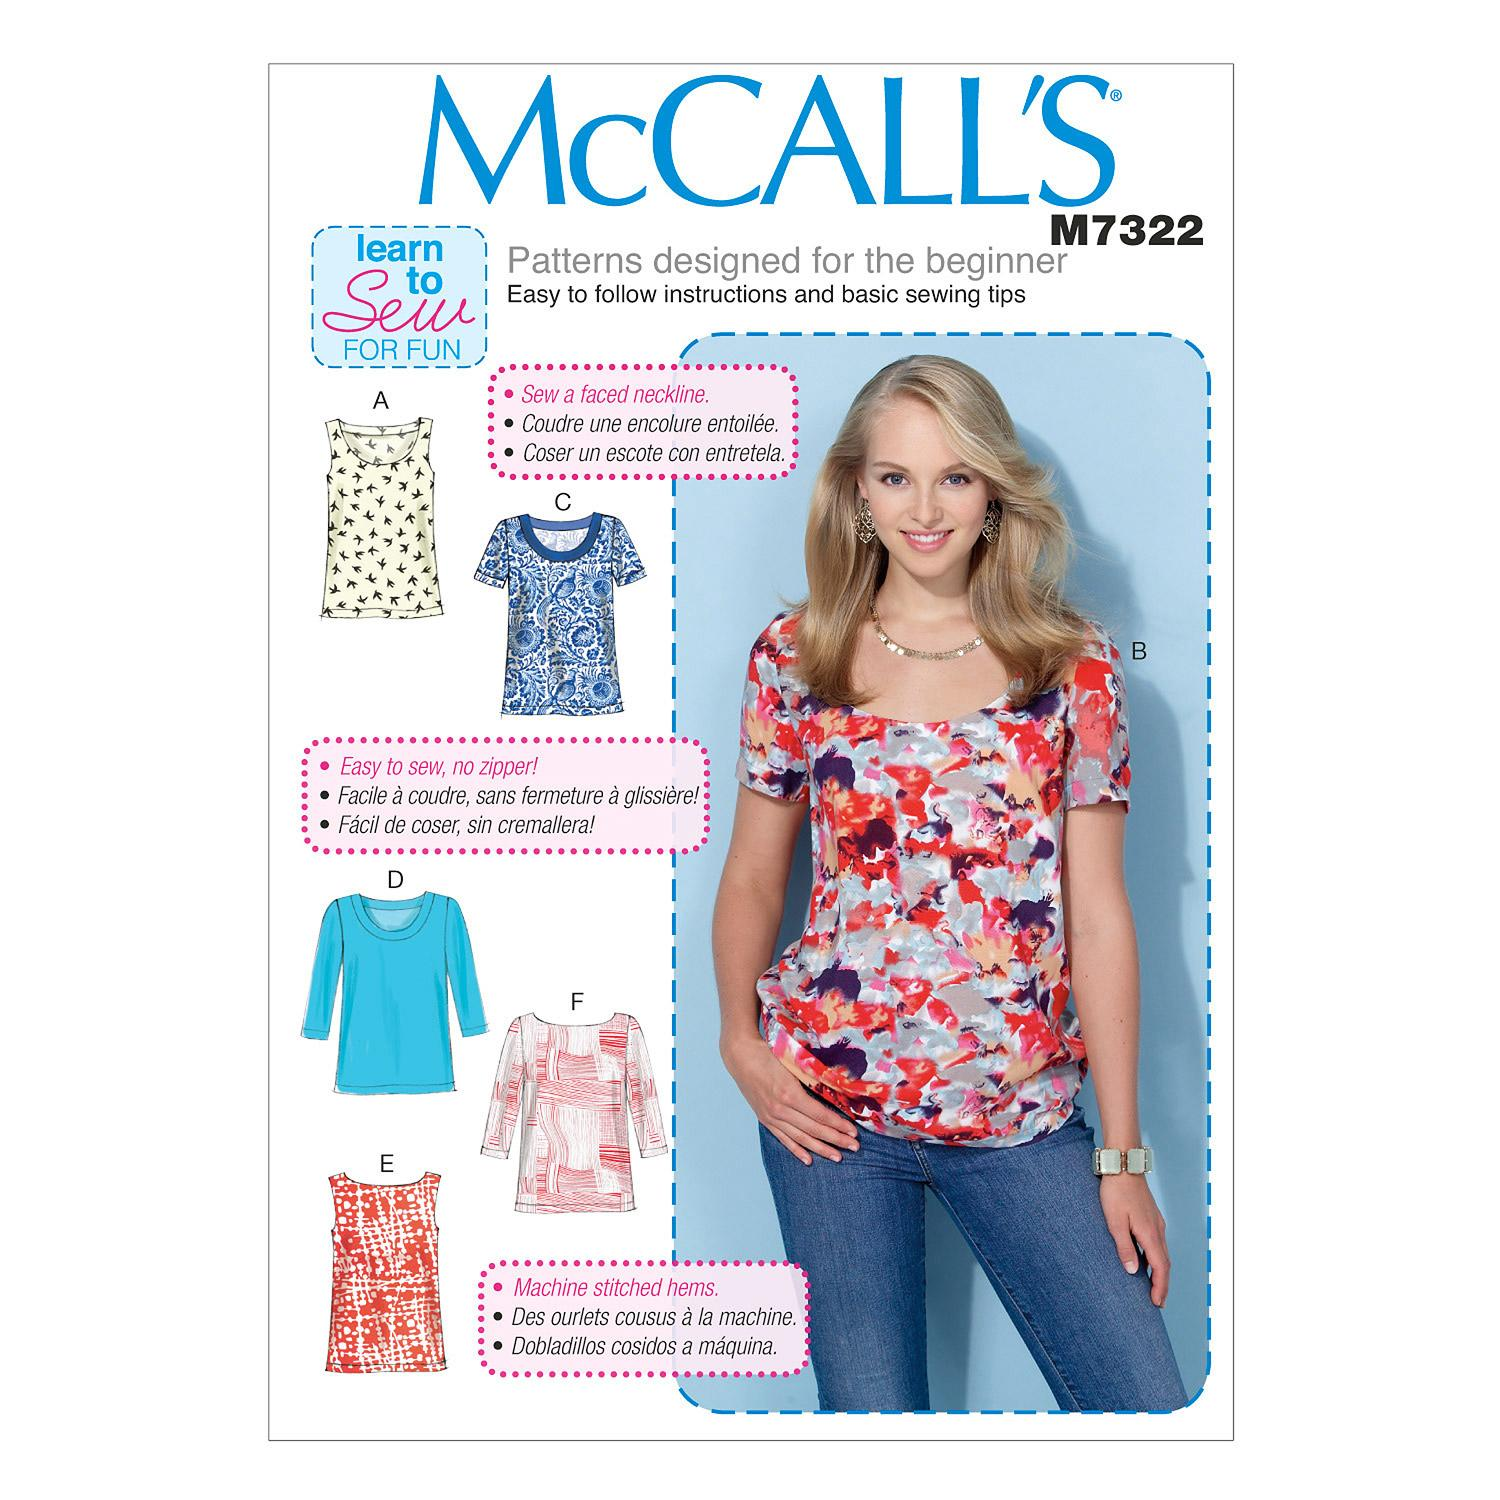 McCalls M7322 Learn To Sew for Fun, Tops/Tunics